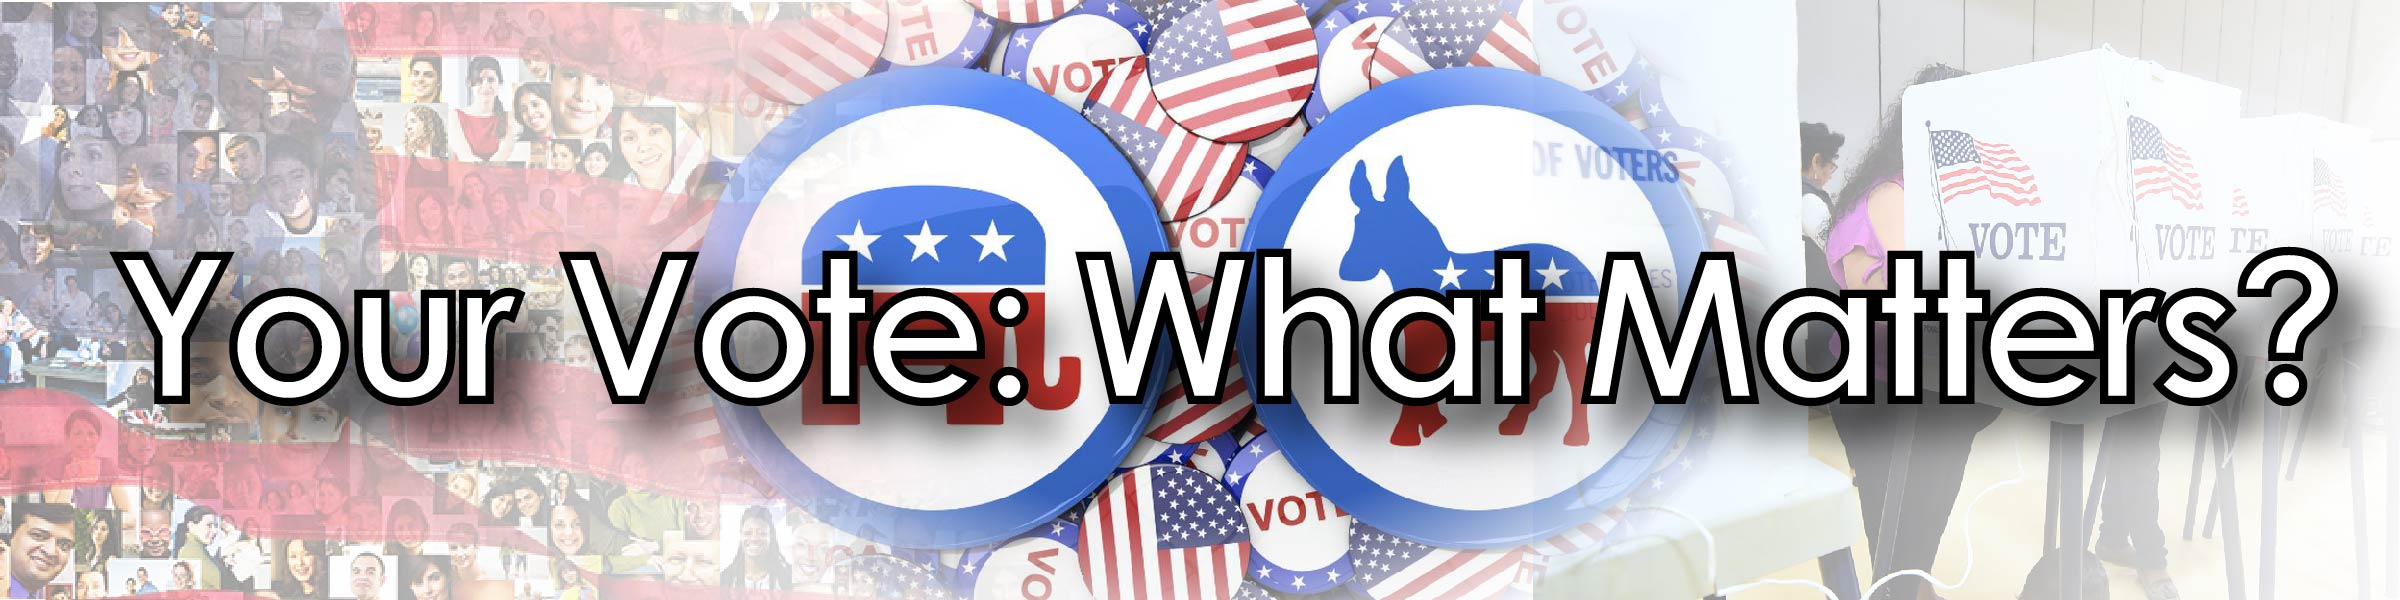 Your Vote: What Matters?